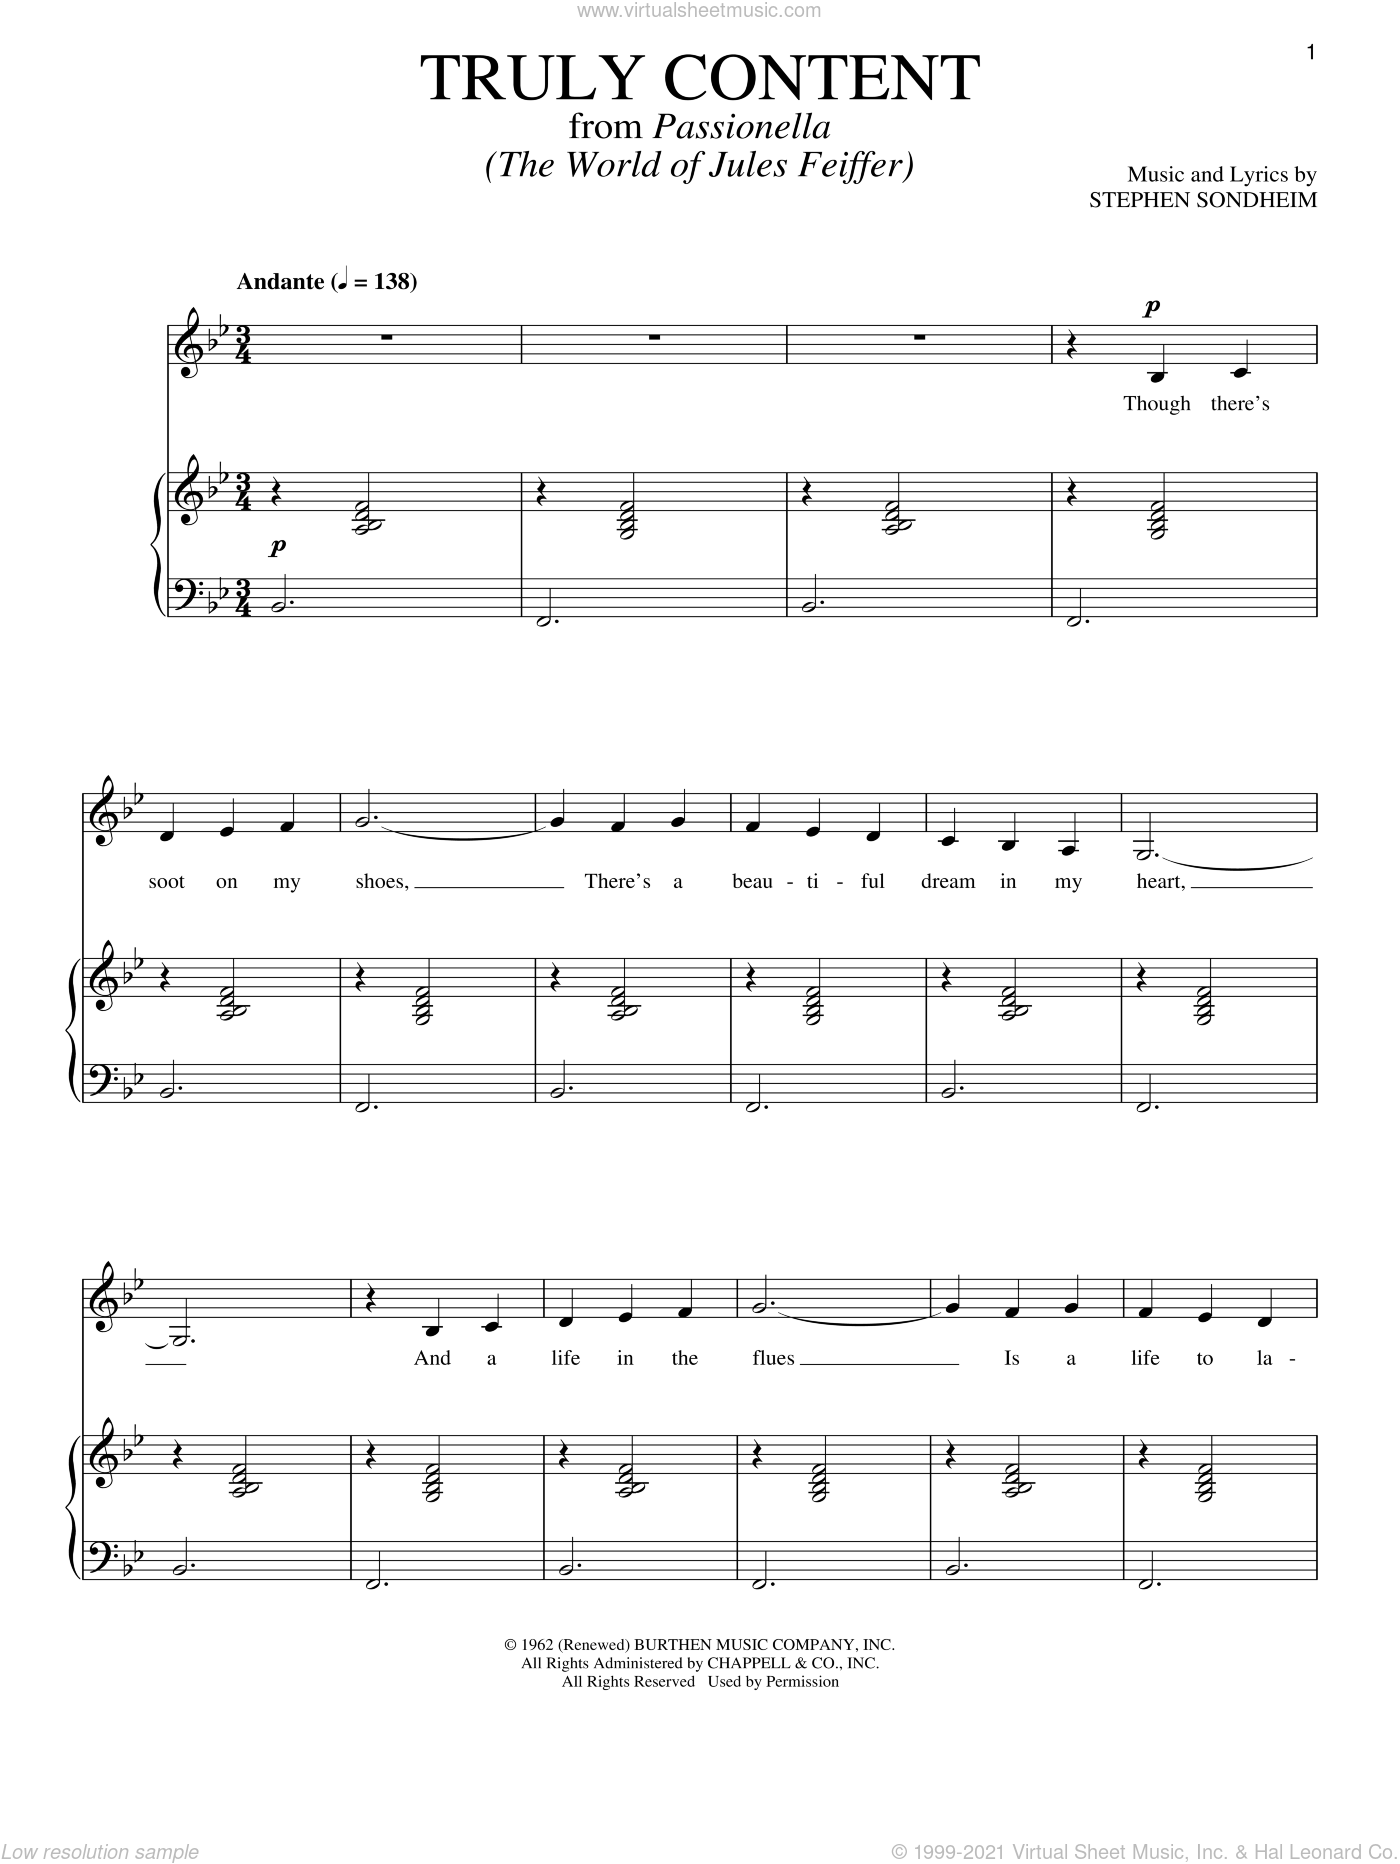 Truly Content sheet music for voice and piano by Stephen Sondheim, intermediate